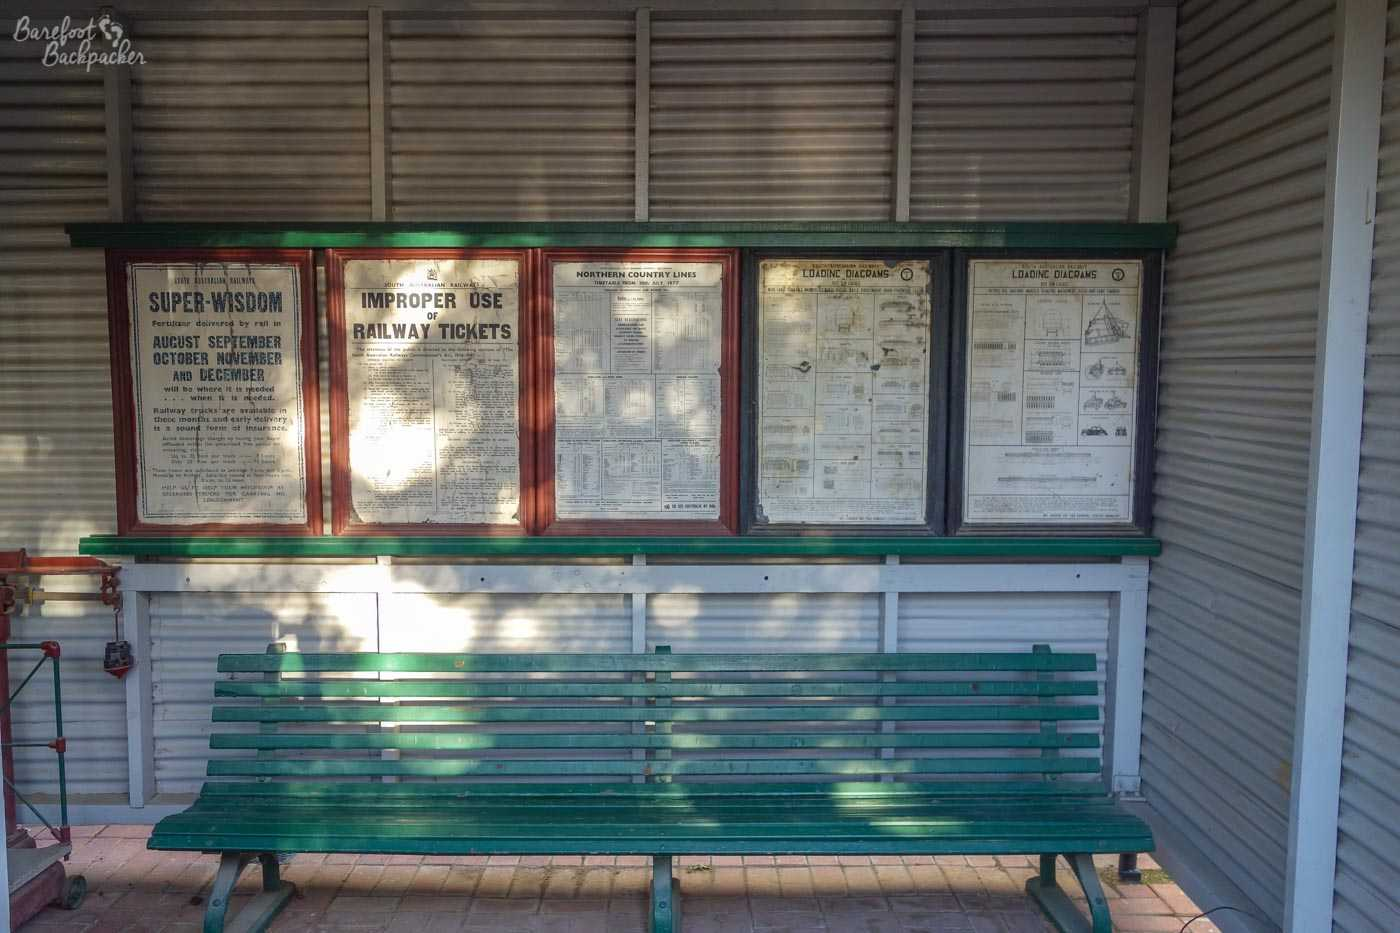 A replica of a waiting shelter at a railway station. There's a green wooden slatted bench below a series of old-fashioned information posters including timetable information, freight loading instructions, and the rules and regulations on the use of railway tickets.